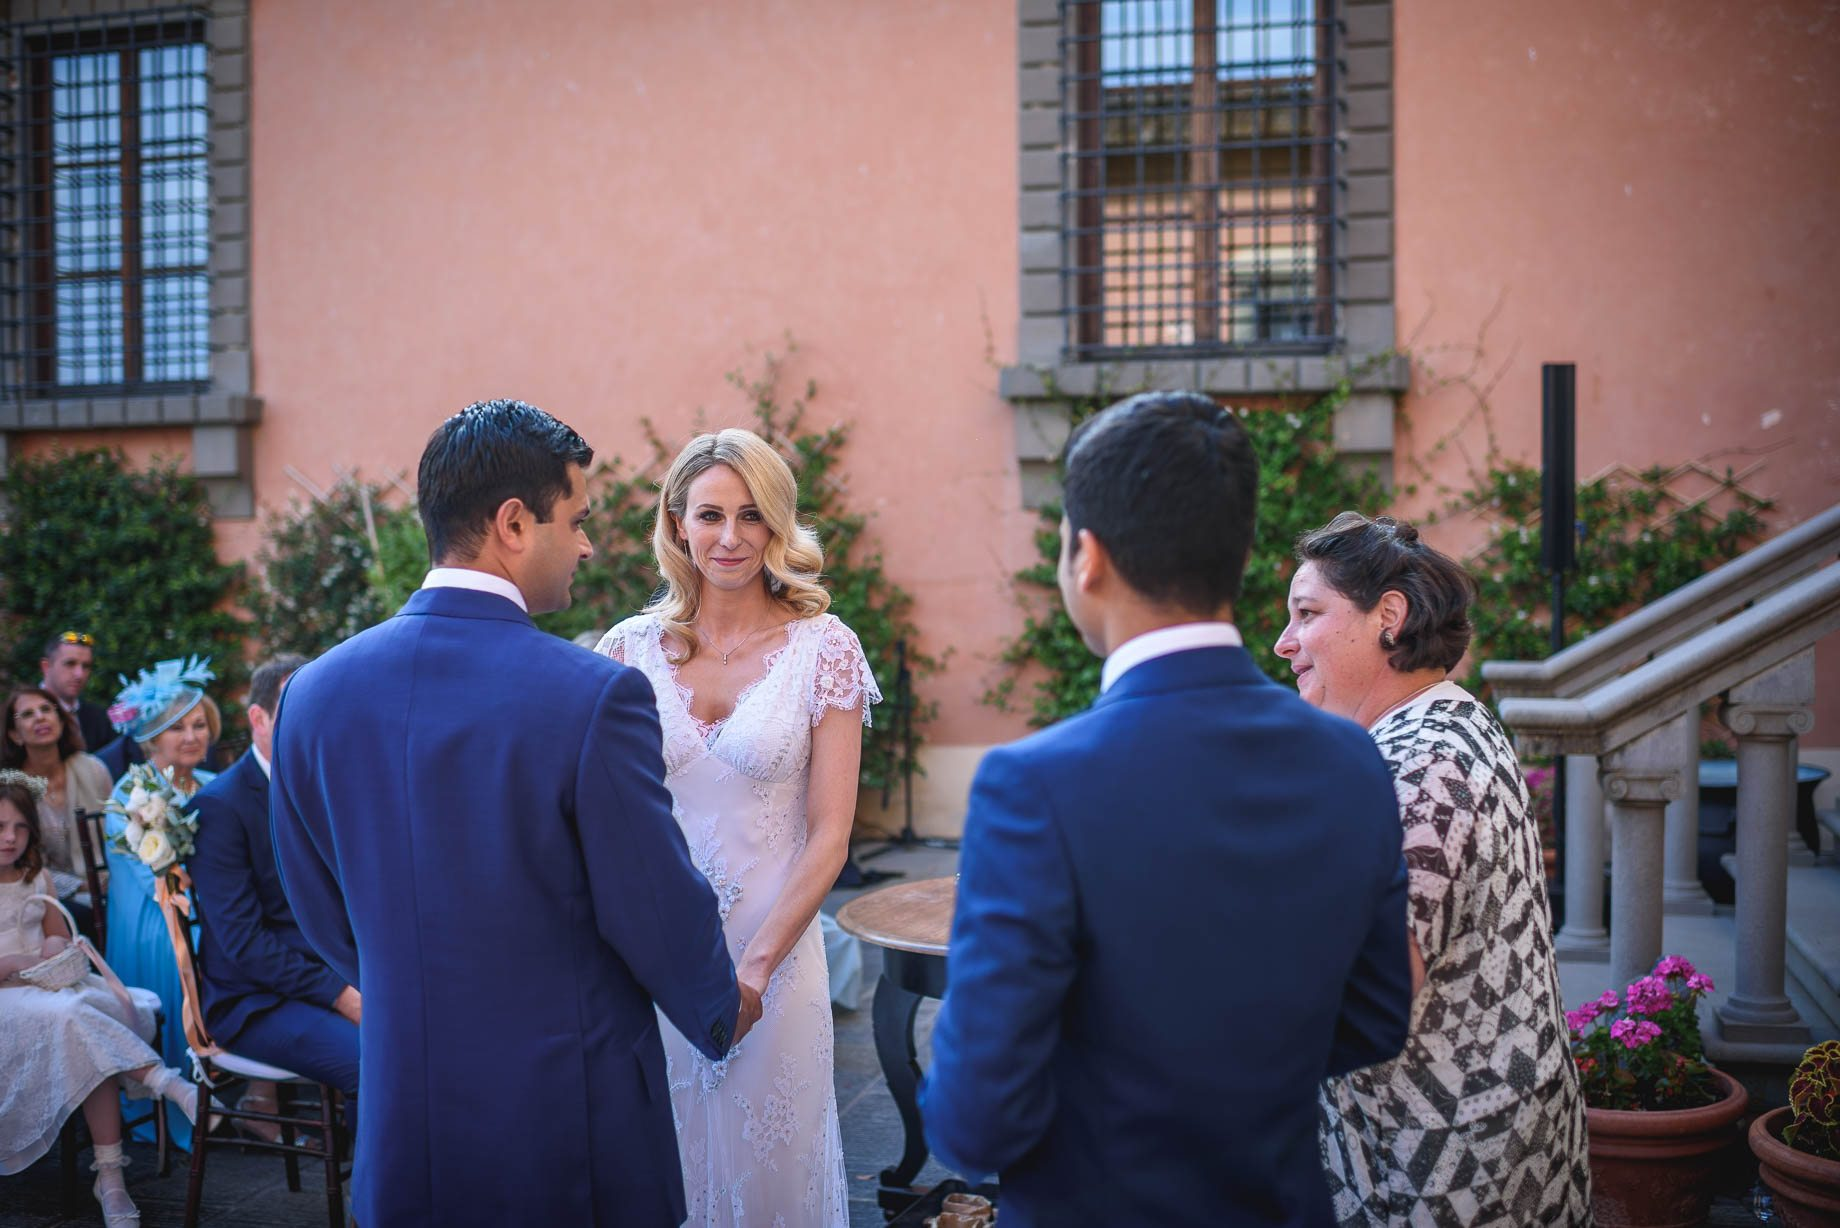 Tuscany wedding photography - Roisin and Moubin - Guy Collier Photography (109 of 251)